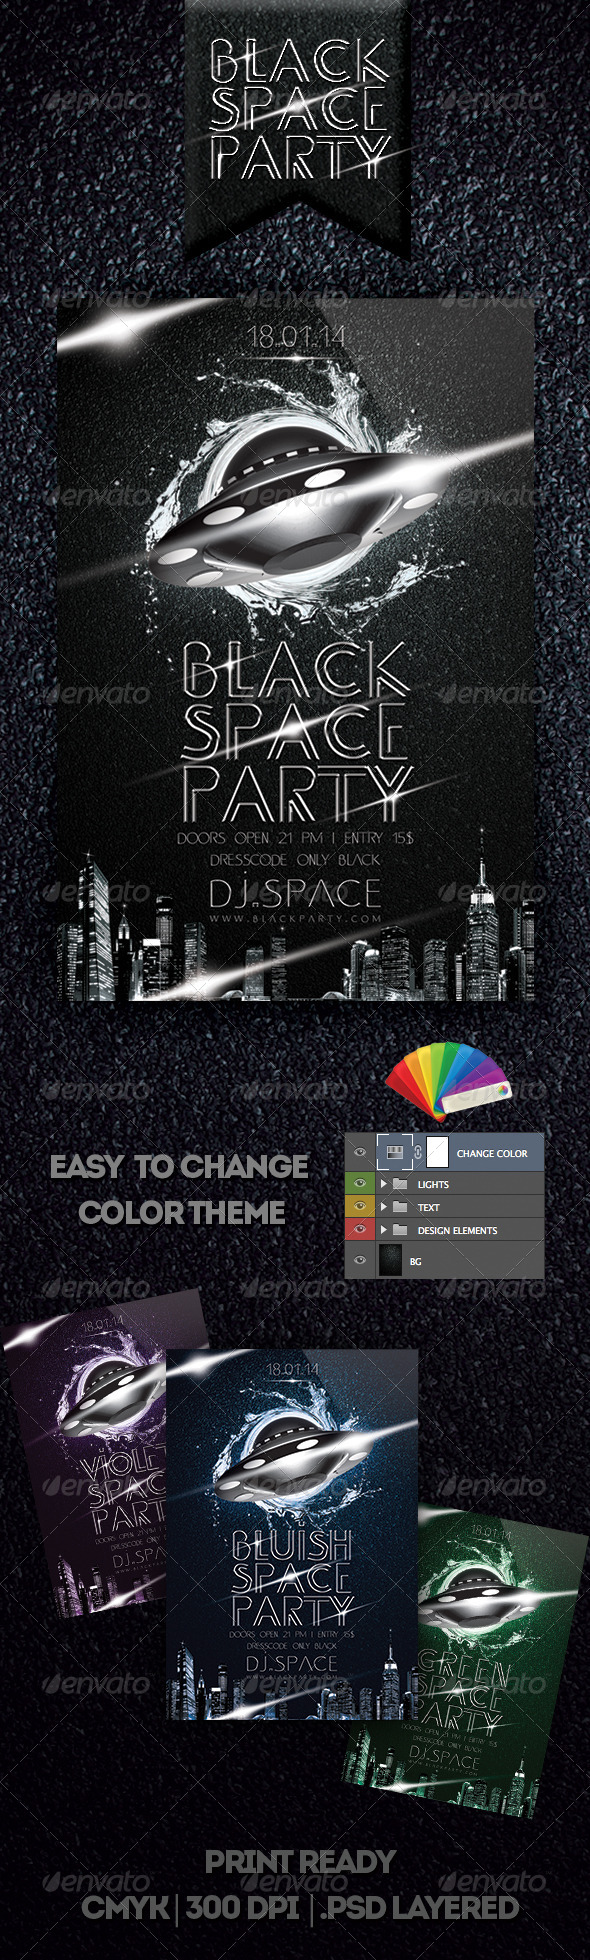 Black Space Party Flyer - Clubs & Parties Events